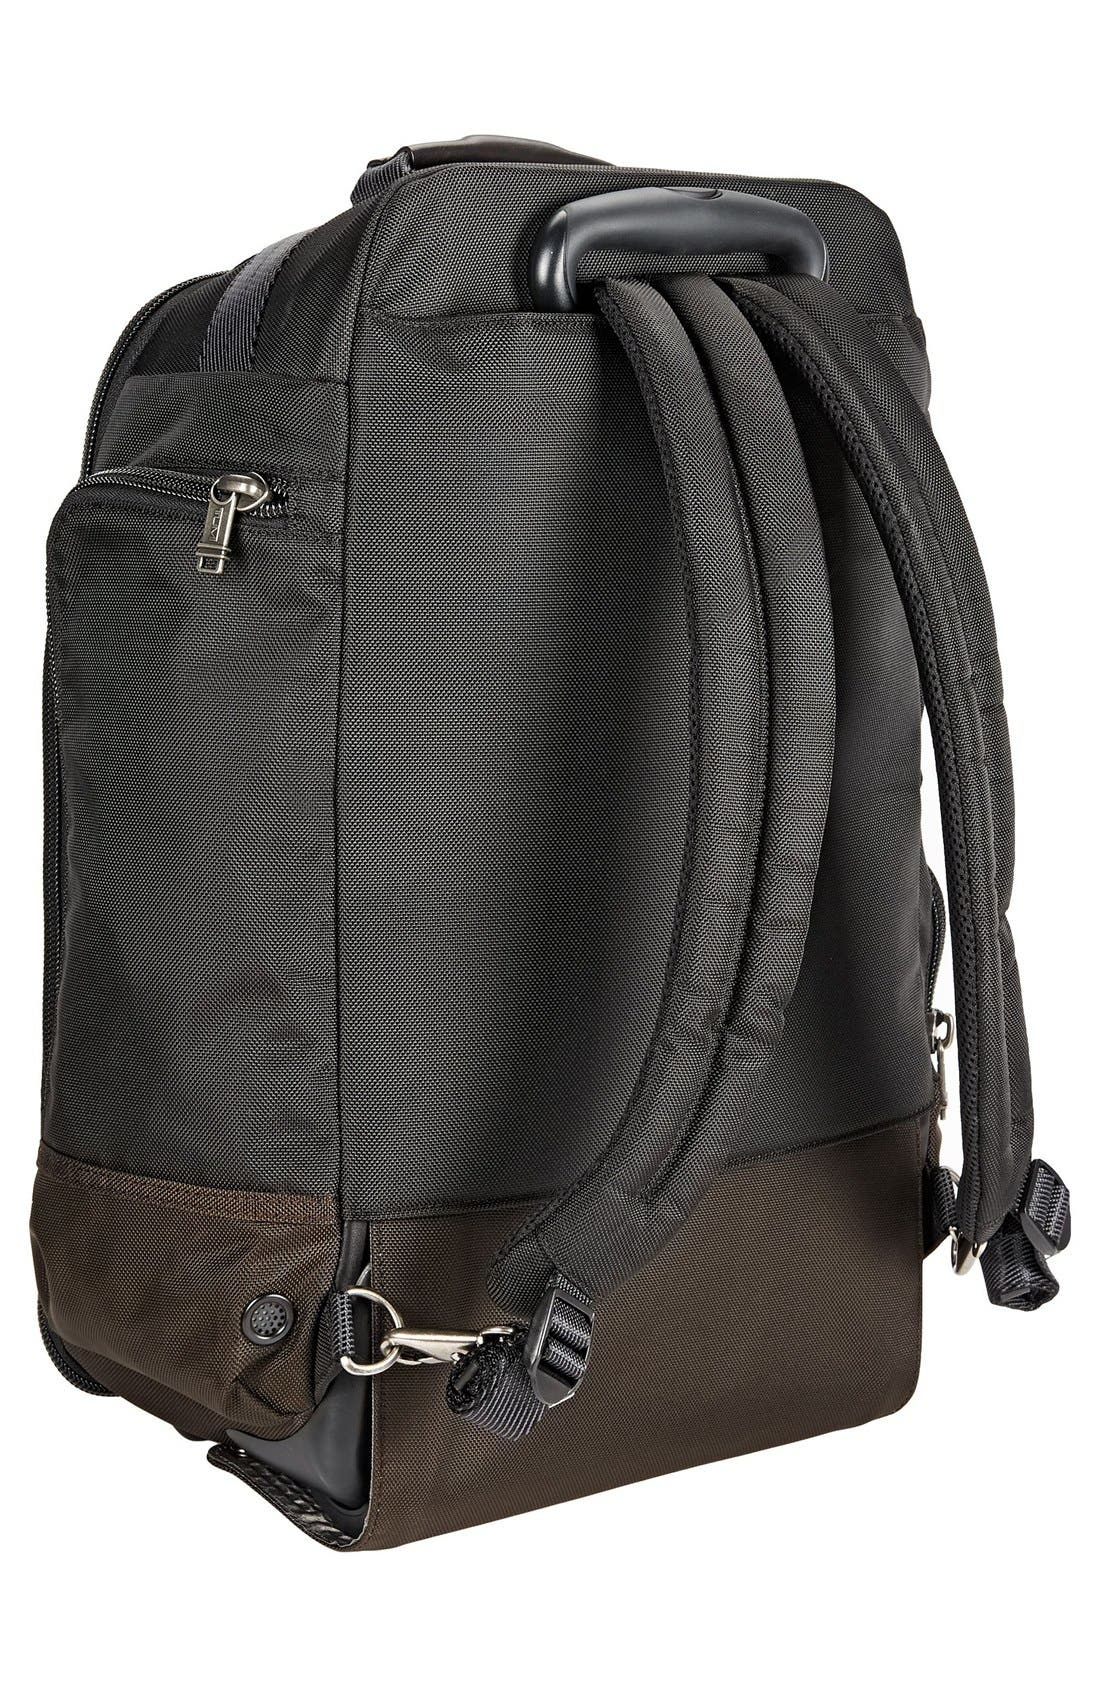 'Alpha Bravo – Peterson' Wheeled Backpack,                             Alternate thumbnail 3, color,                             Hickory Black